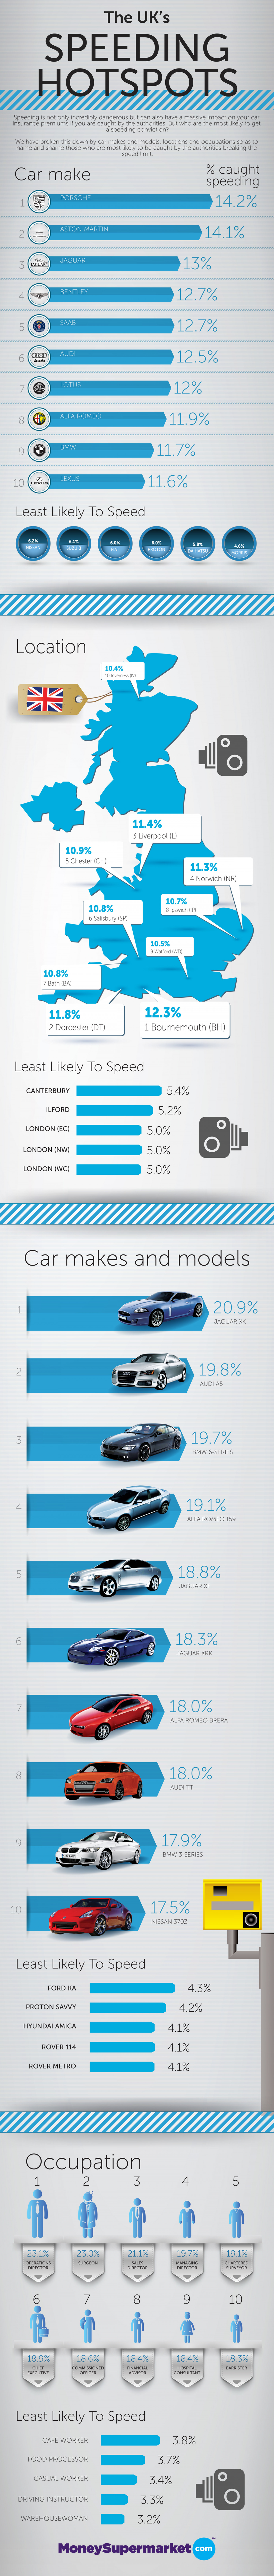 UK Speeding Hotspots Infographic